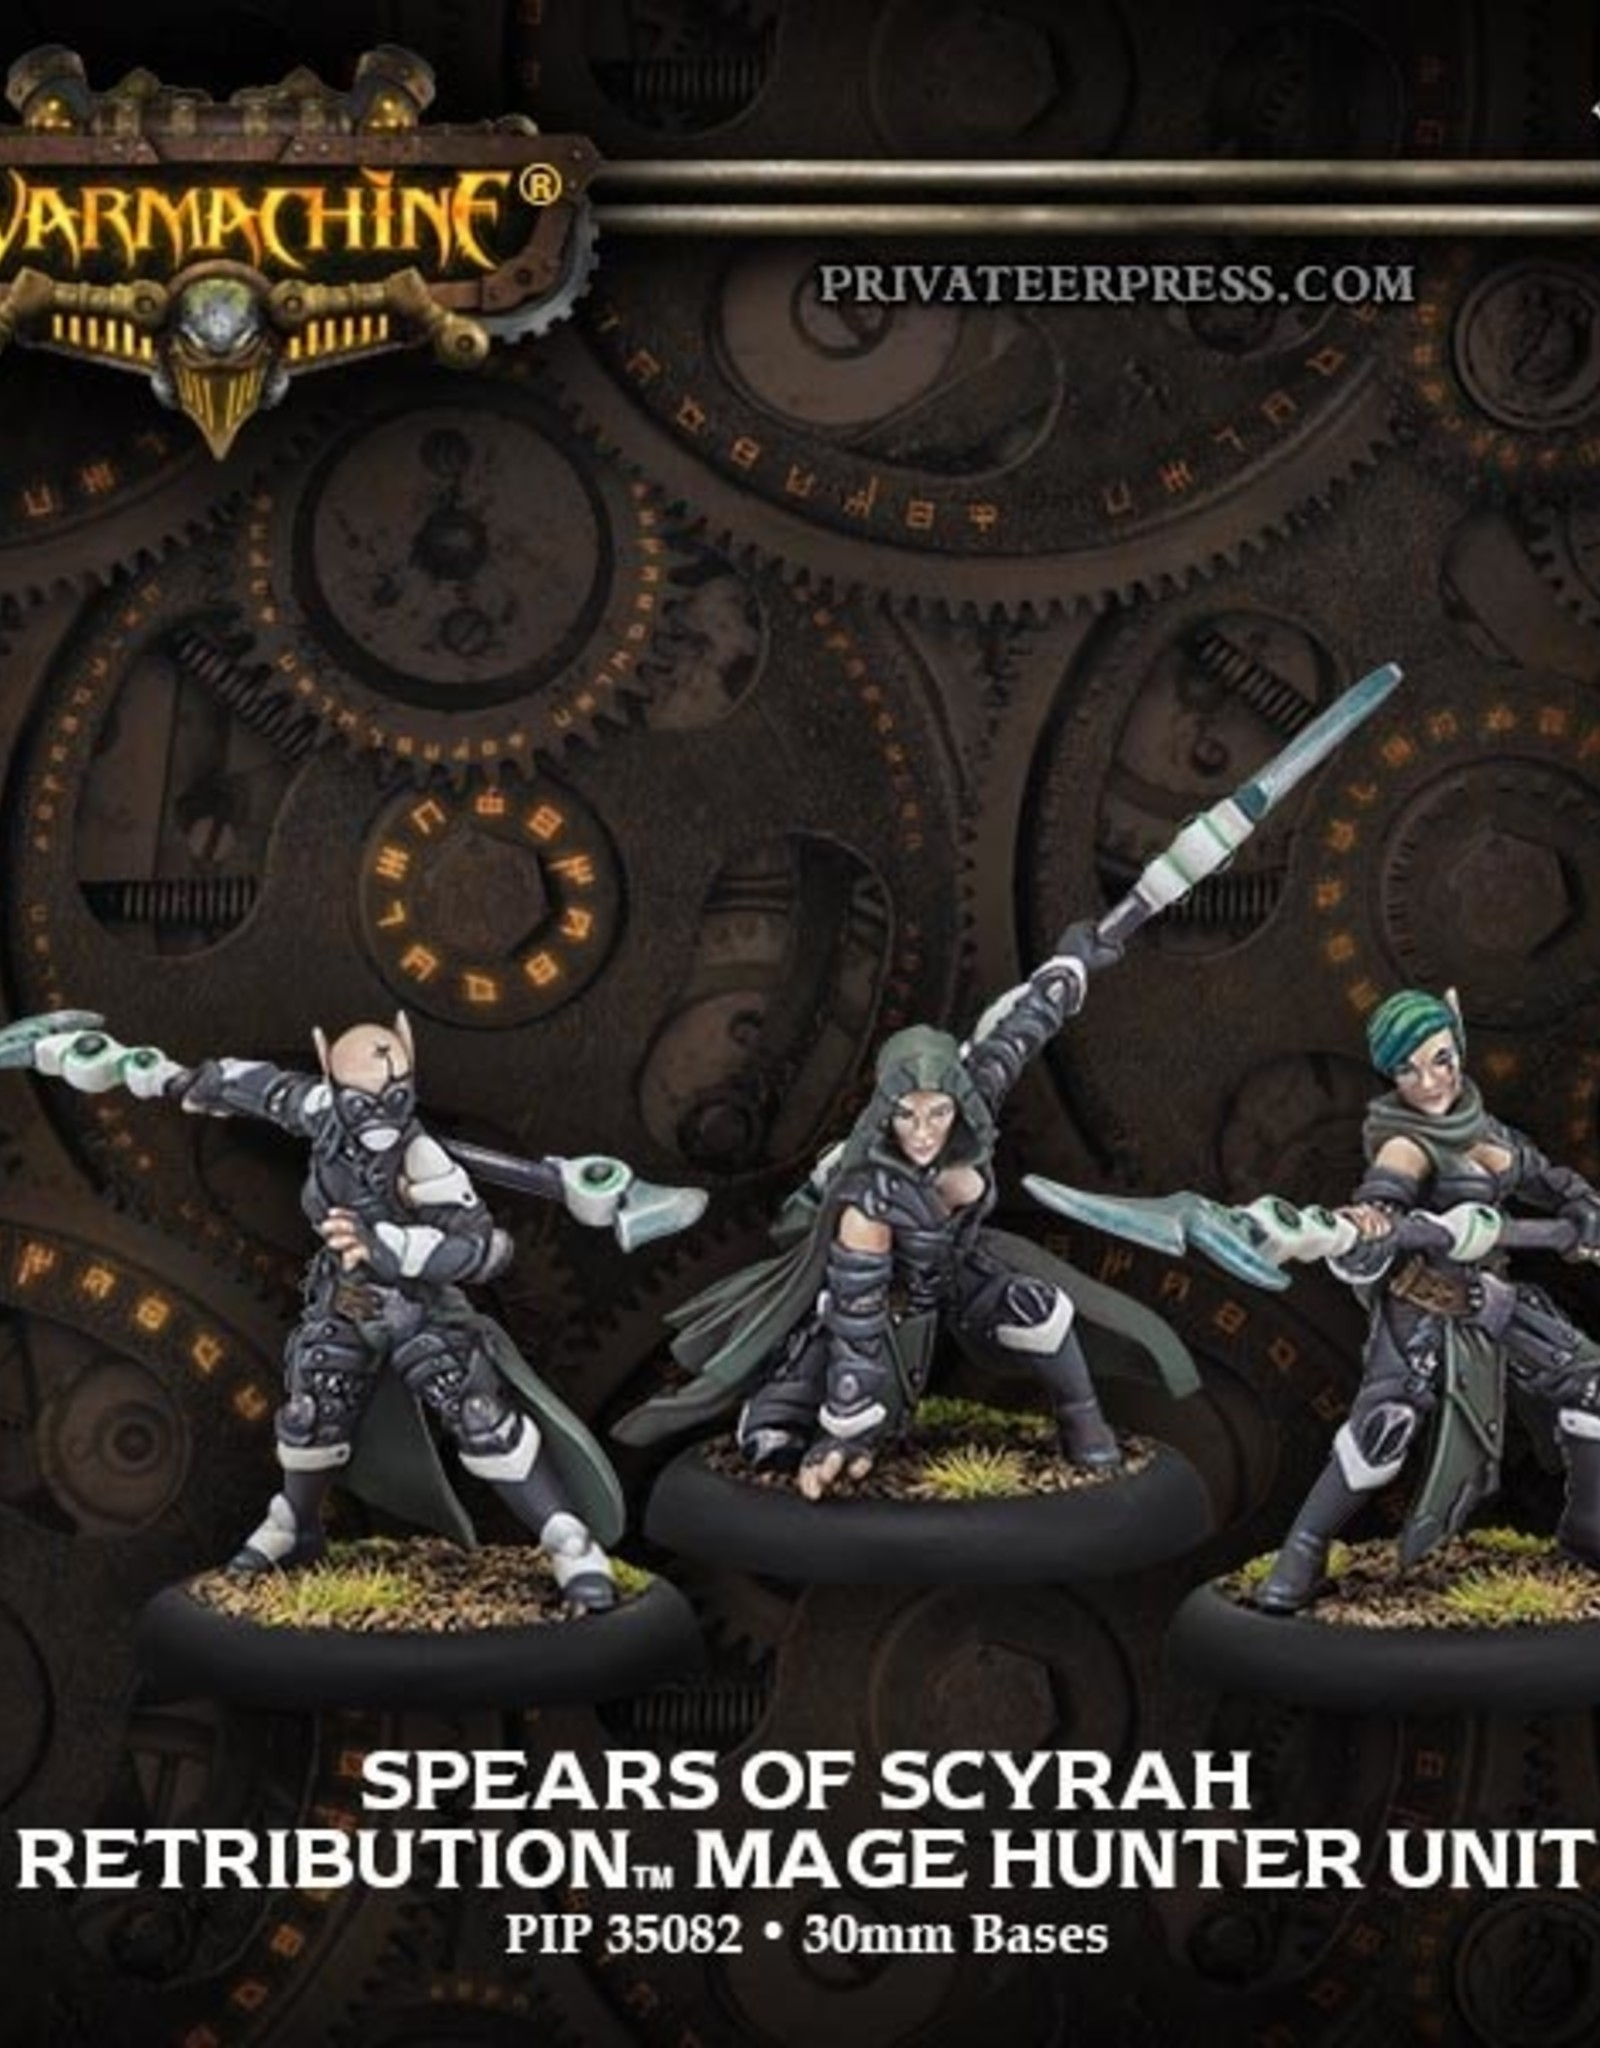 Warmachine Scyrah - Spears of Scyrah